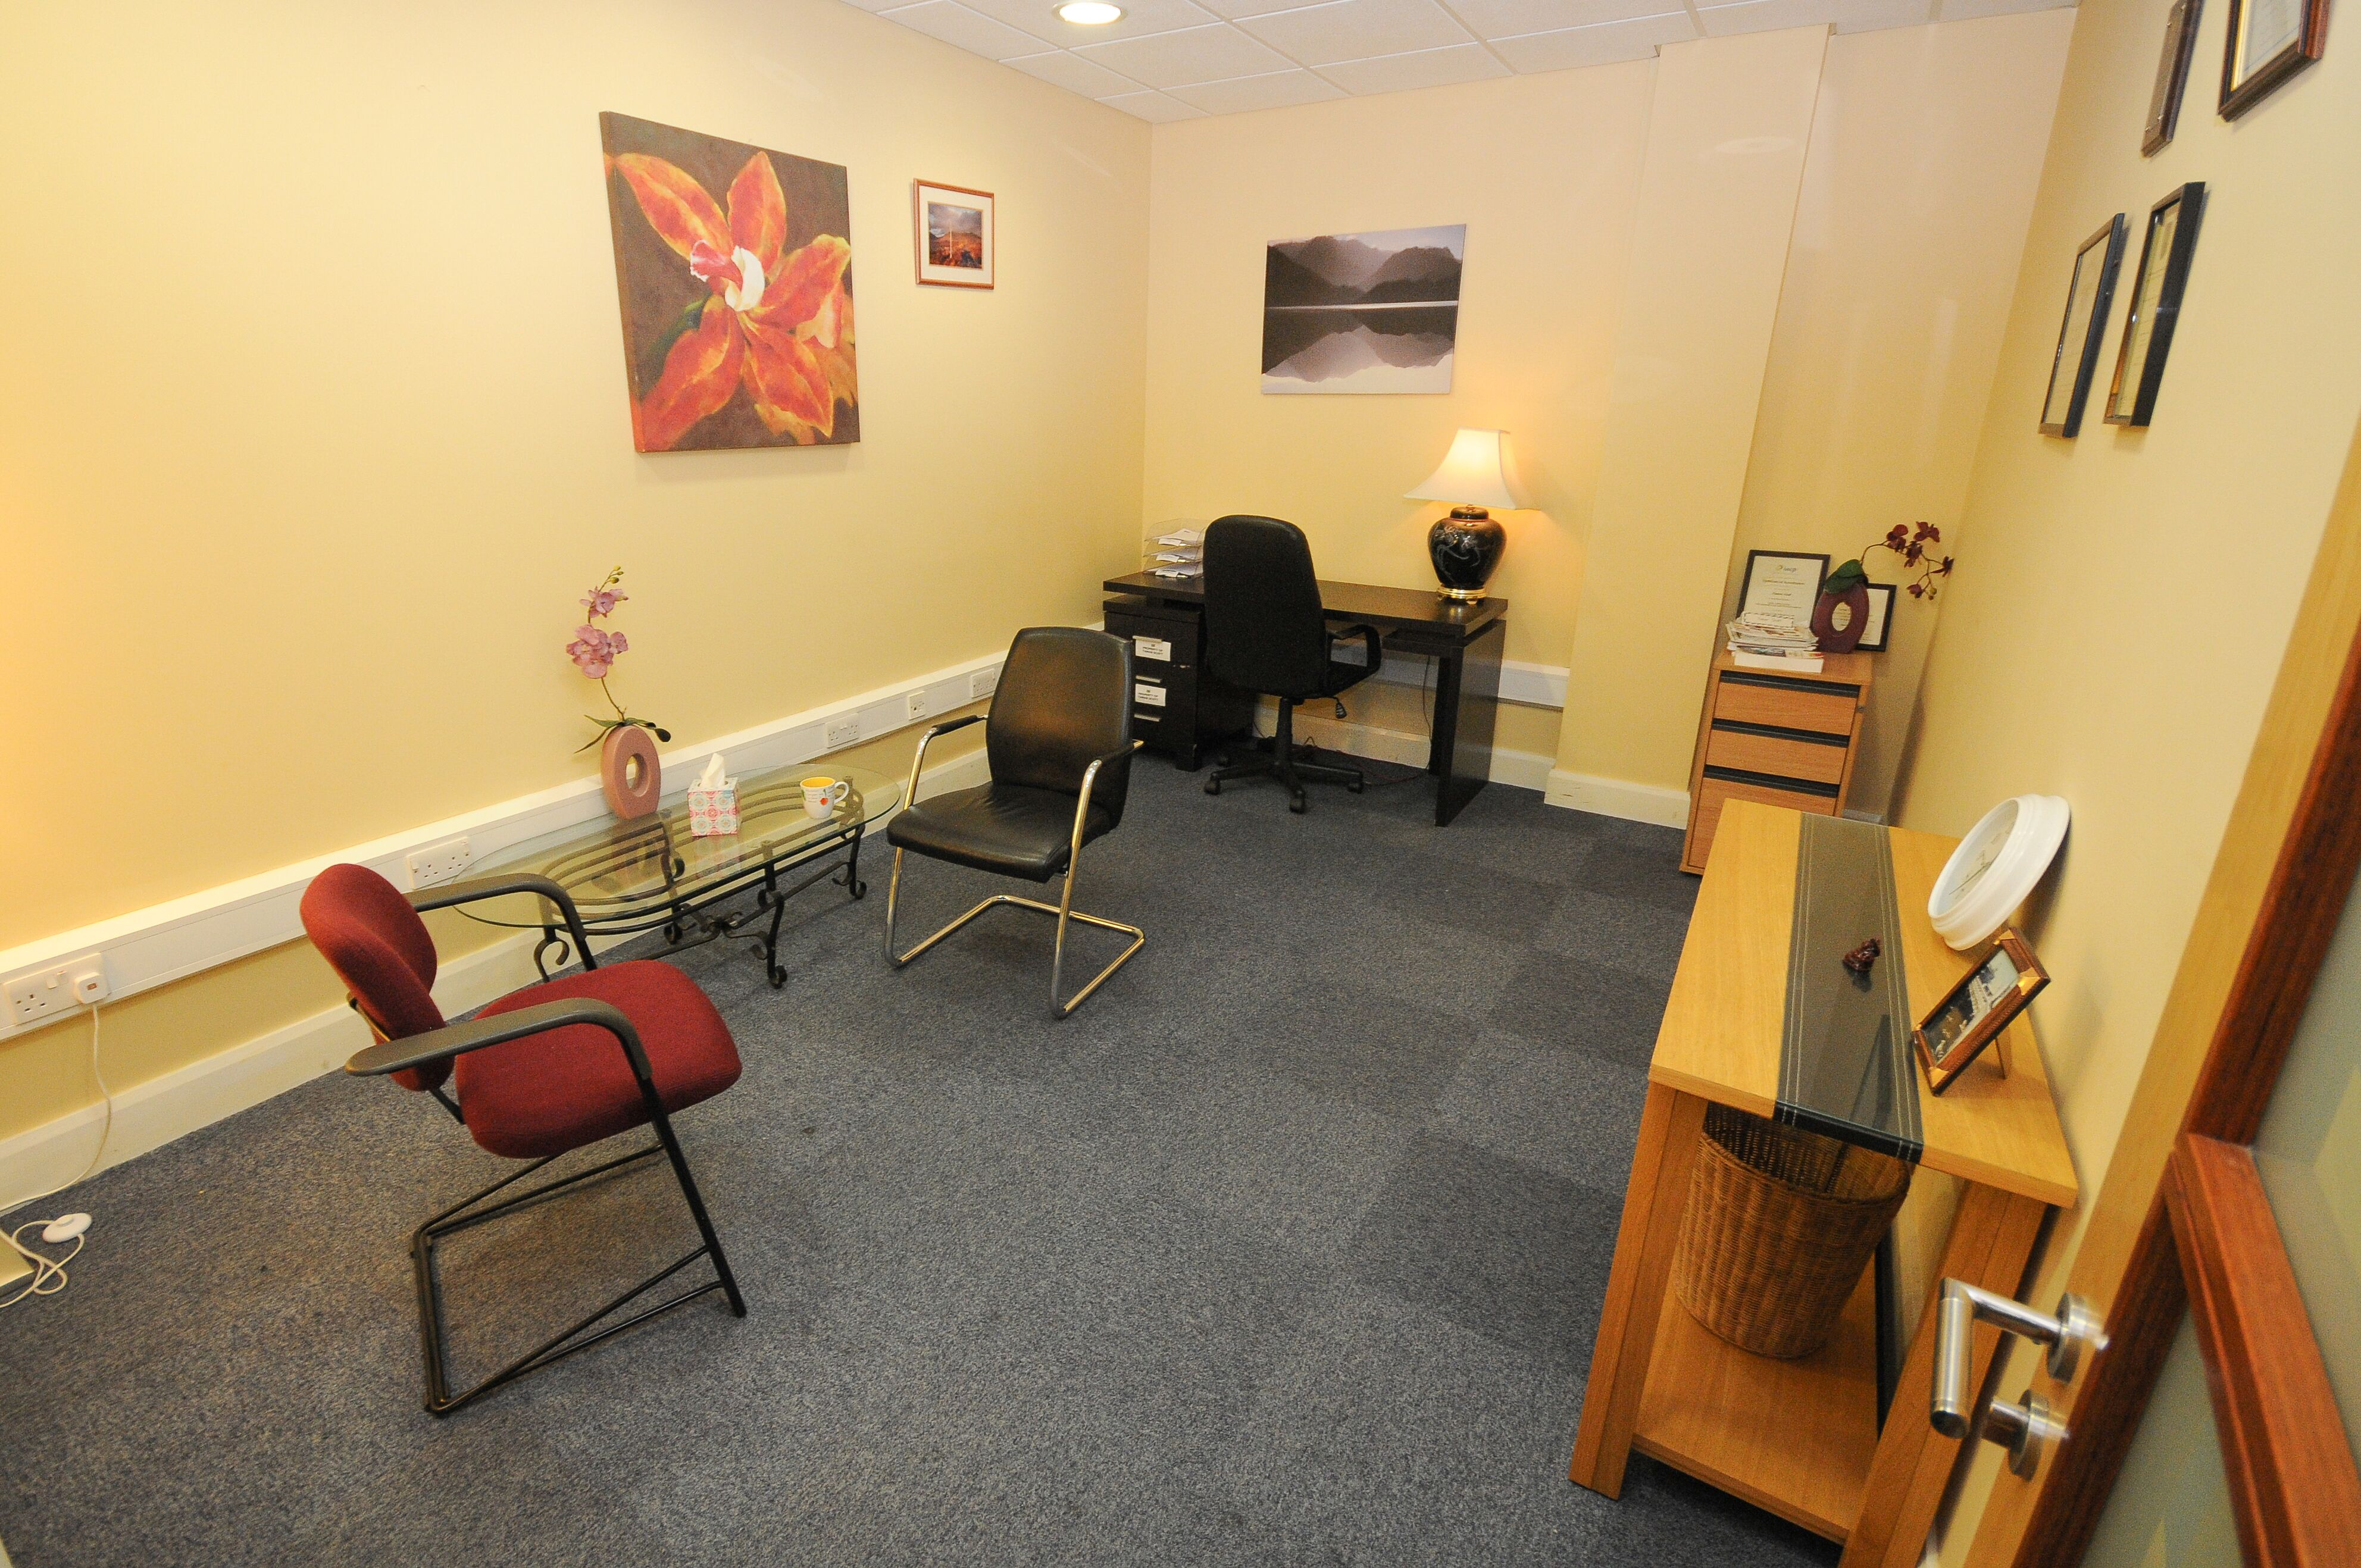 Helplink Galway Counselling - Face-to-Face Counselling Service in Galway